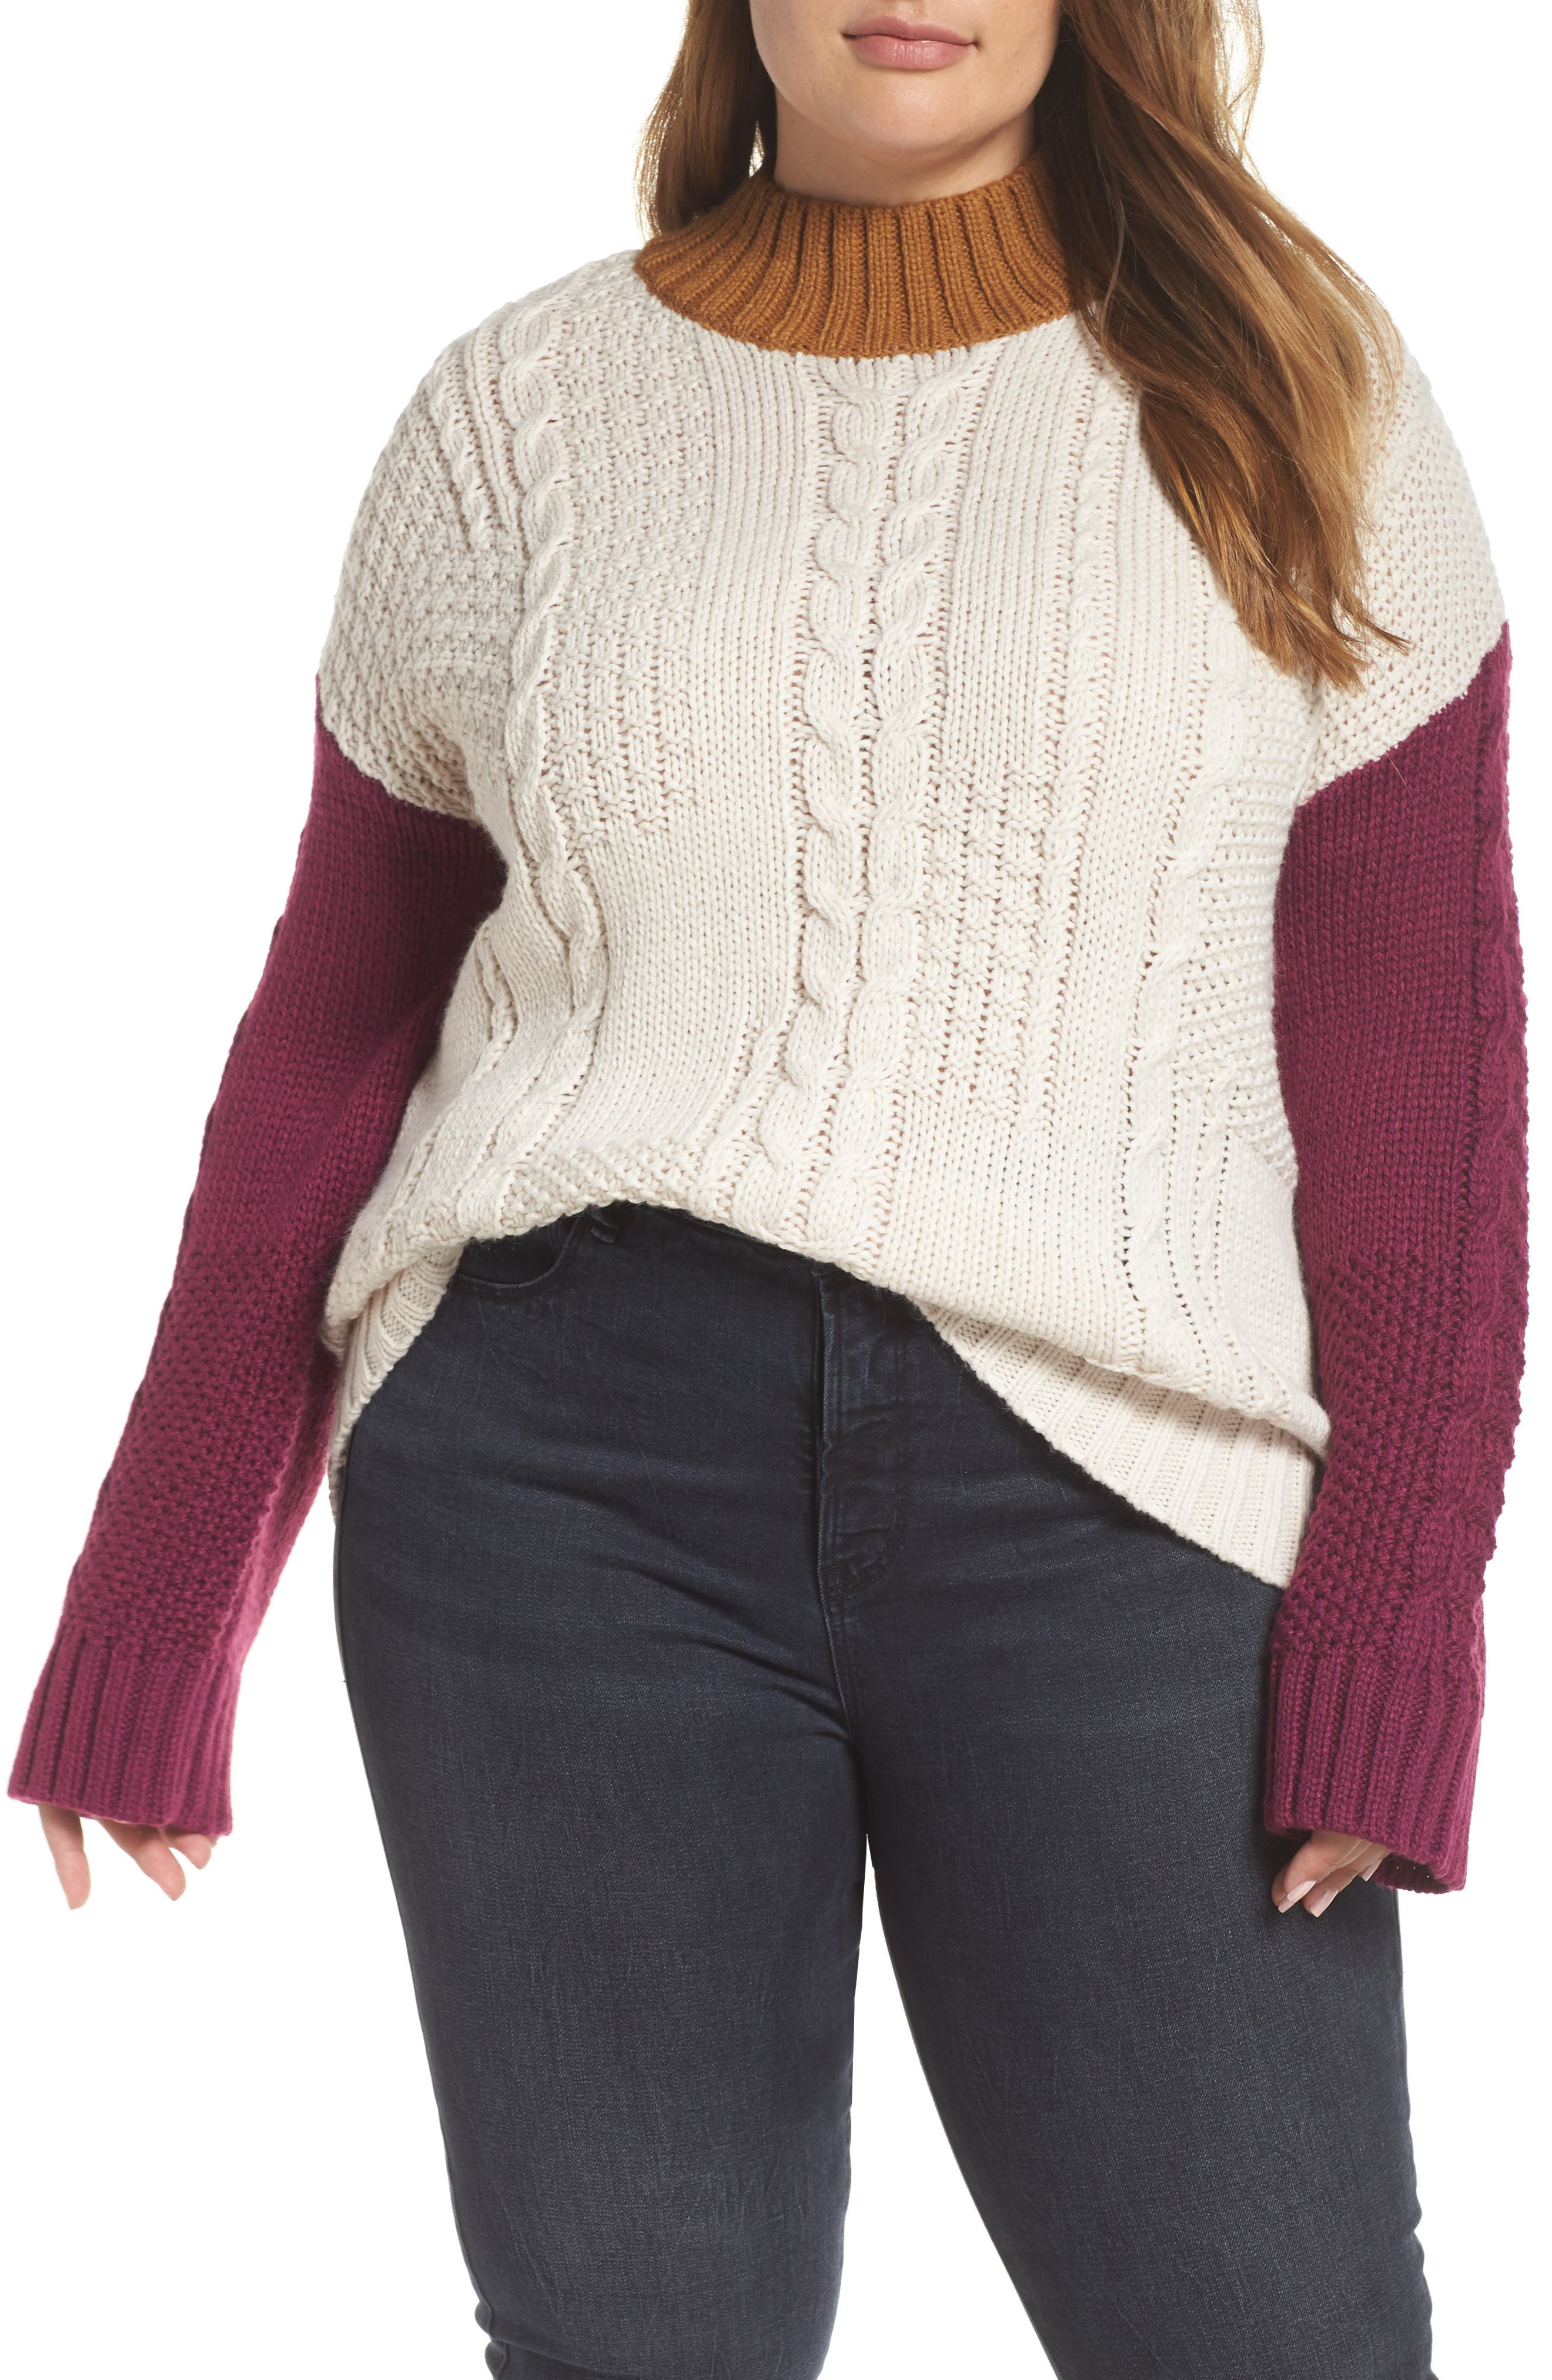 Colorblock Cable Knit Pullover,                             Alternate thumbnail 2, color,                             270